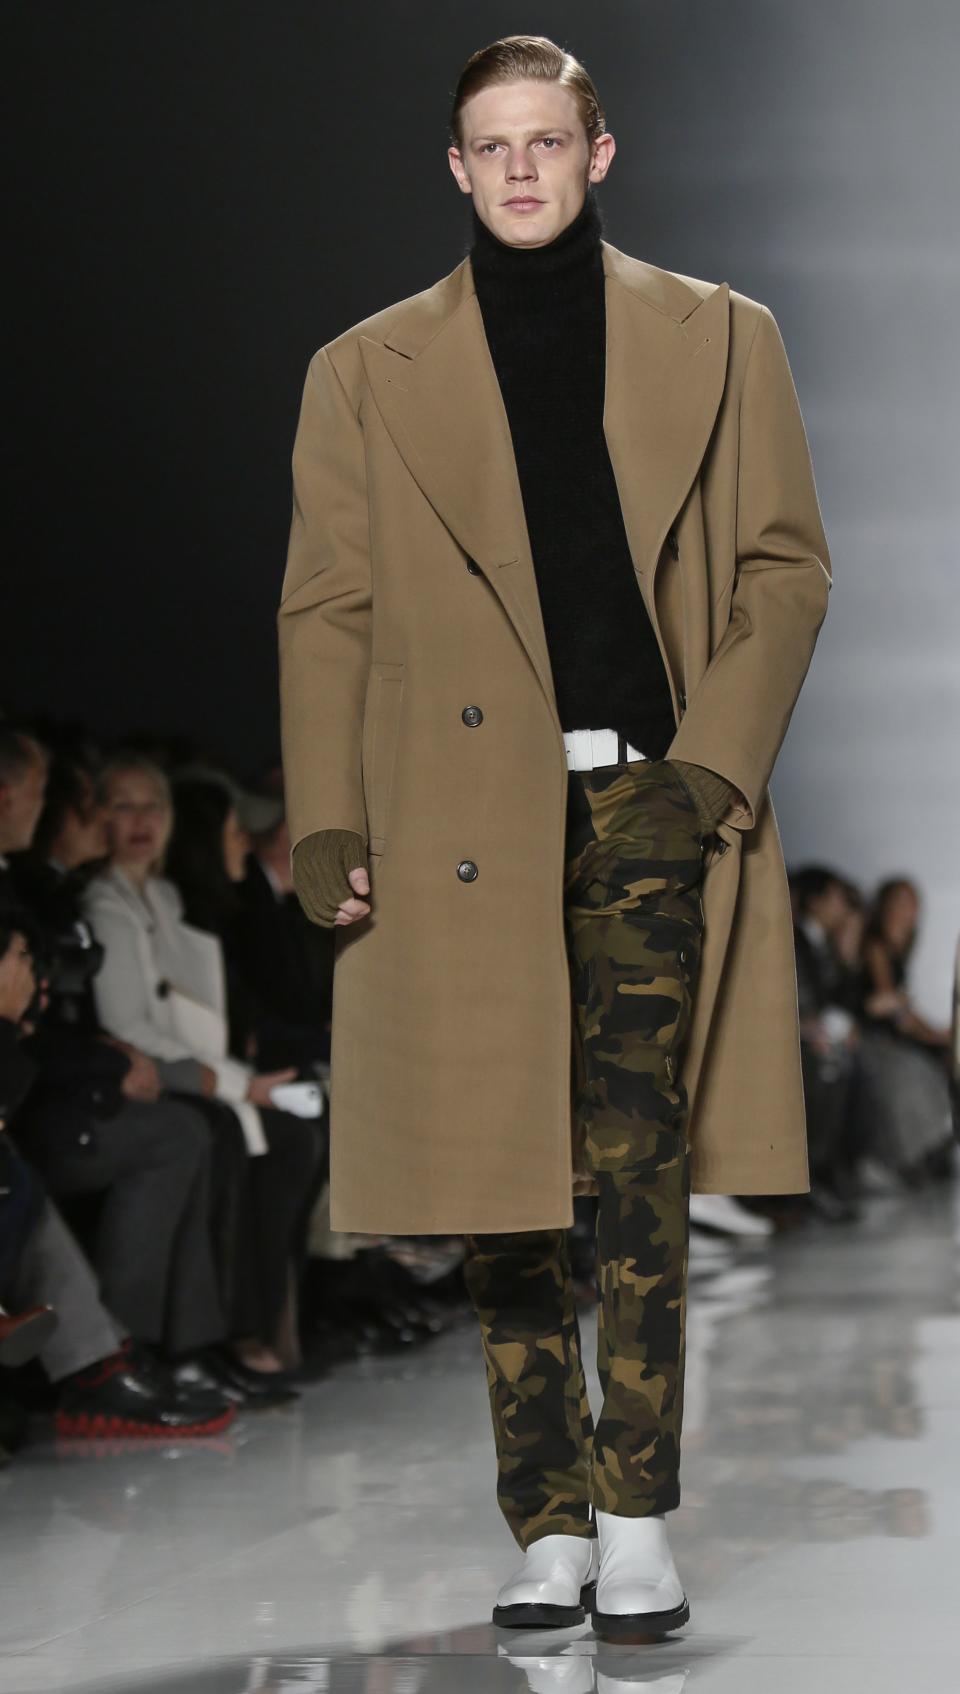 Fashion from the Fall 2013 collection of Michael Kors is modeled on Wednesday, Feb. 13, 2013 in New York.  (AP Photo/Bebeto Matthews)